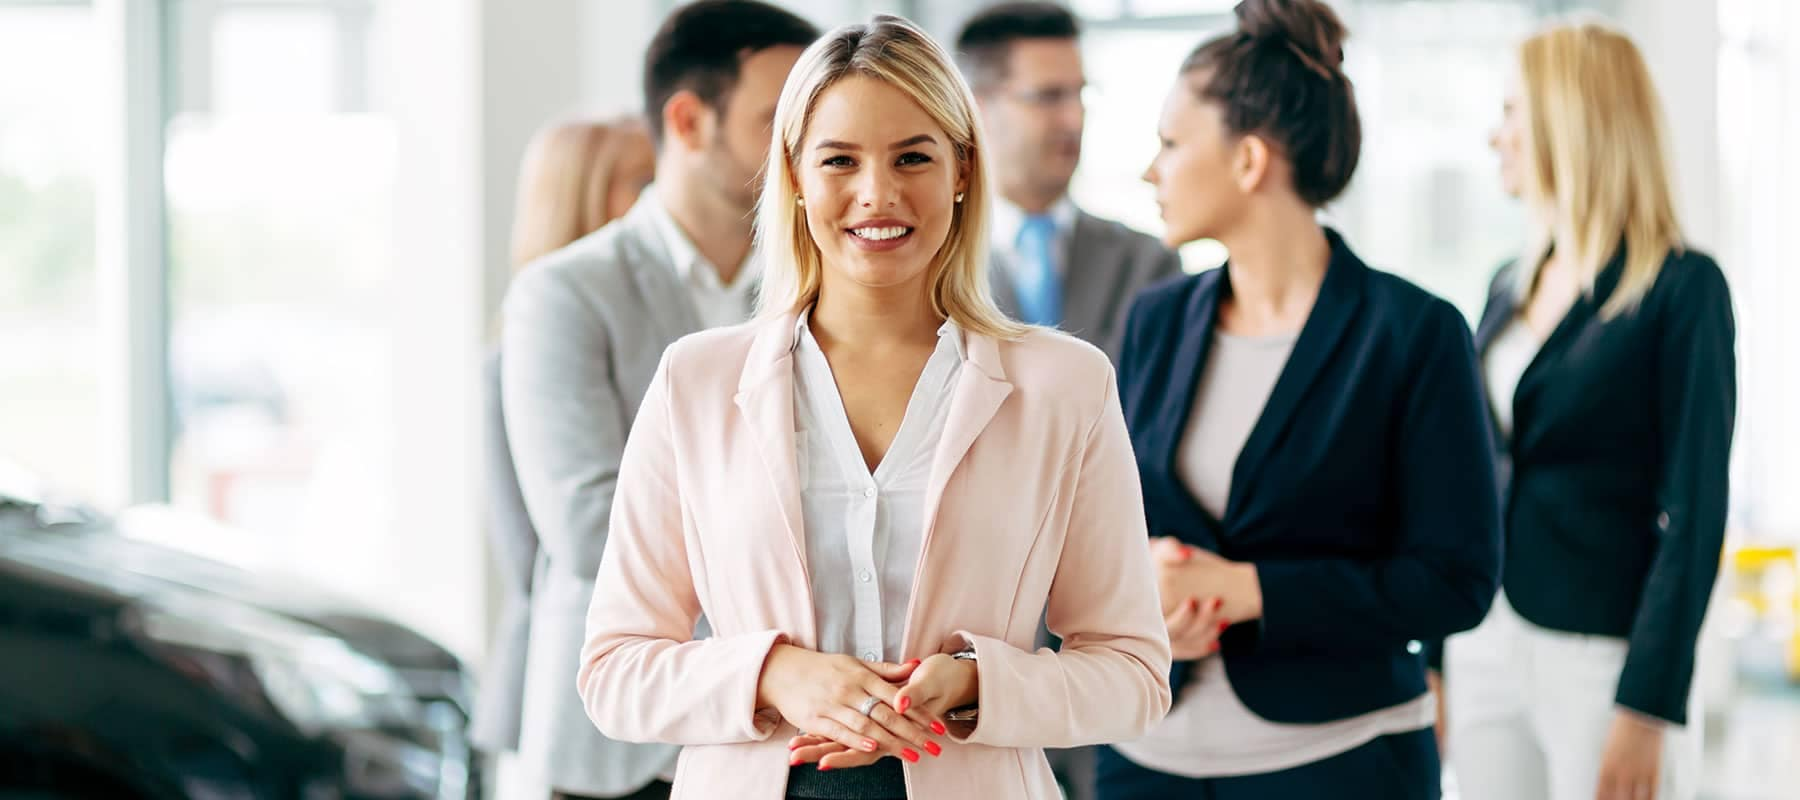 Business Woman Standing in front of People